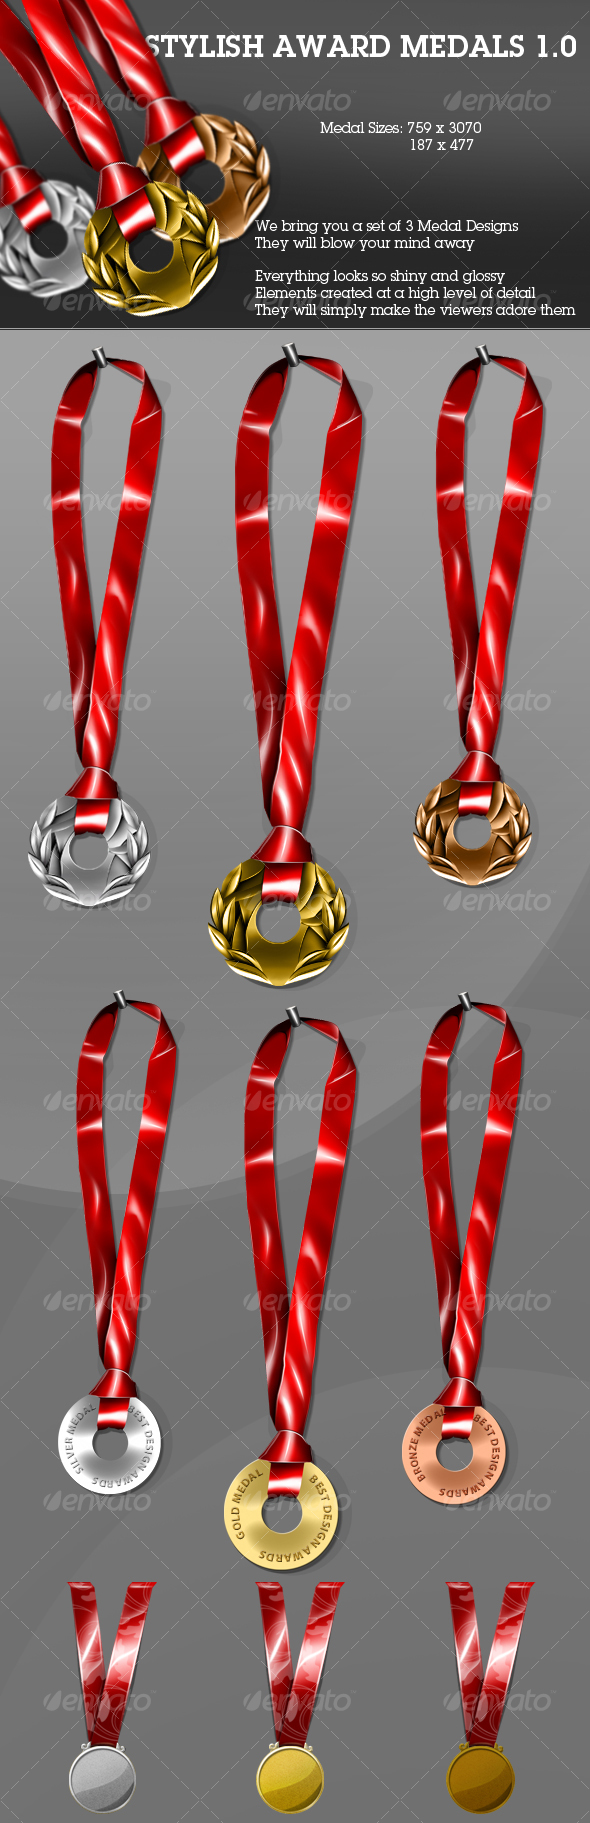 GraphicRiver Stylish Award Medals 1.0 90477